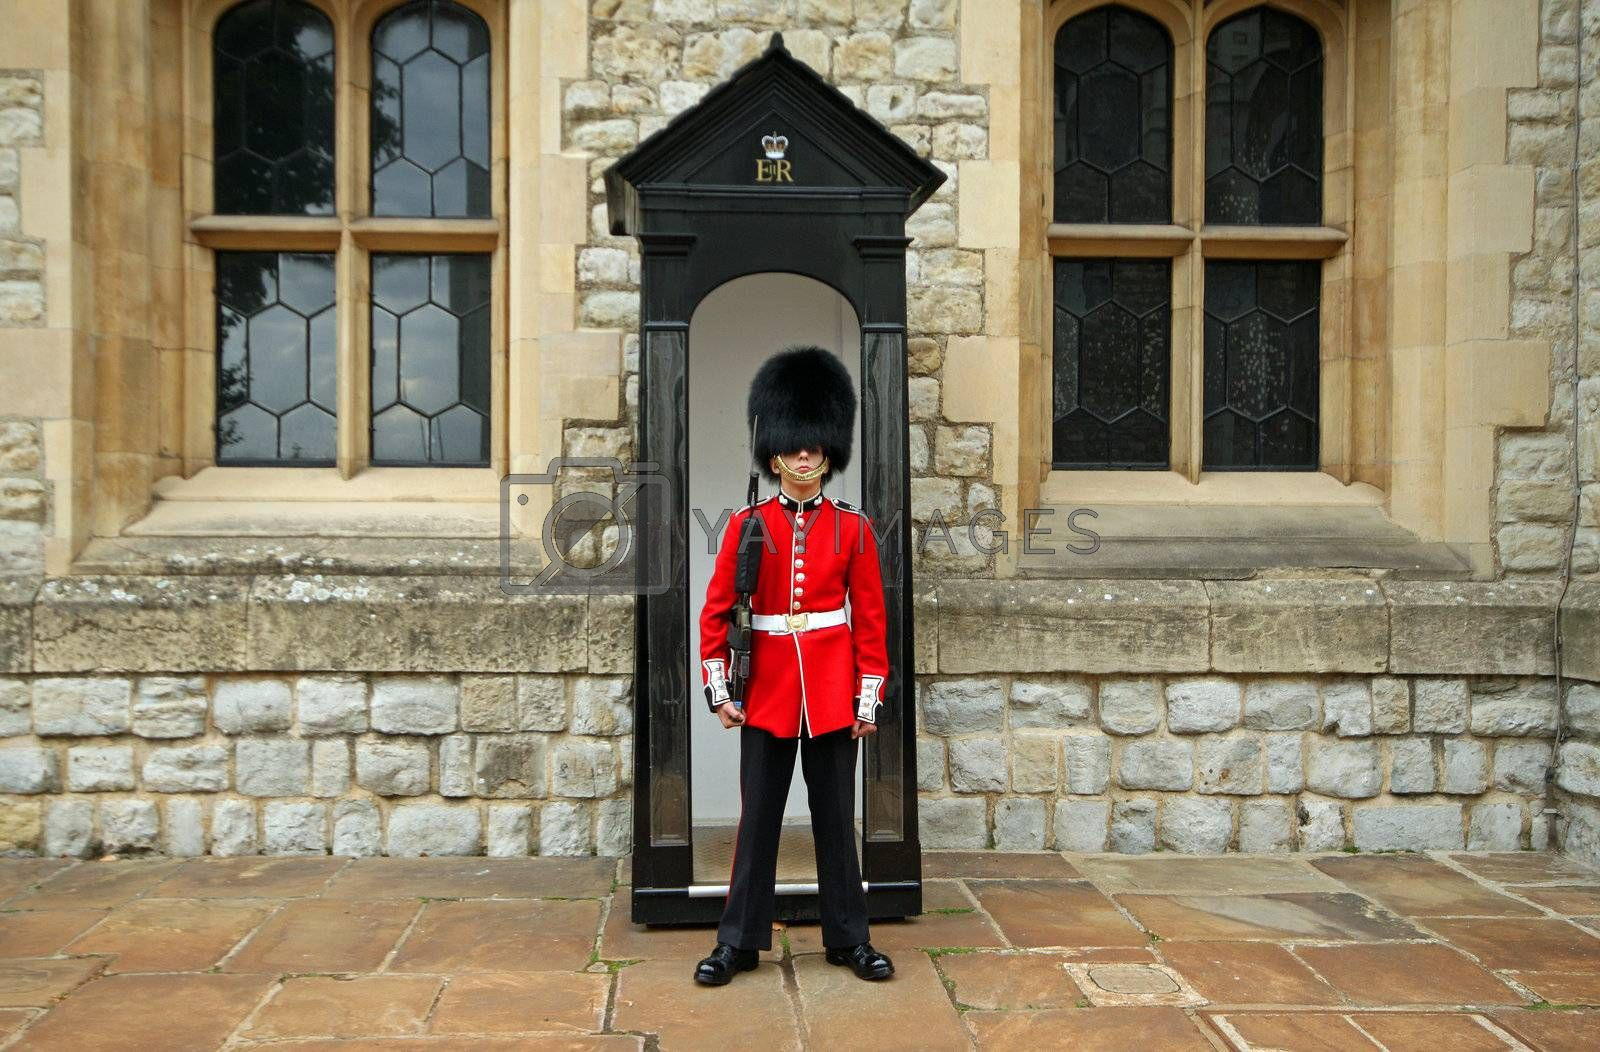 Grenadier guards at attention in full guard duty